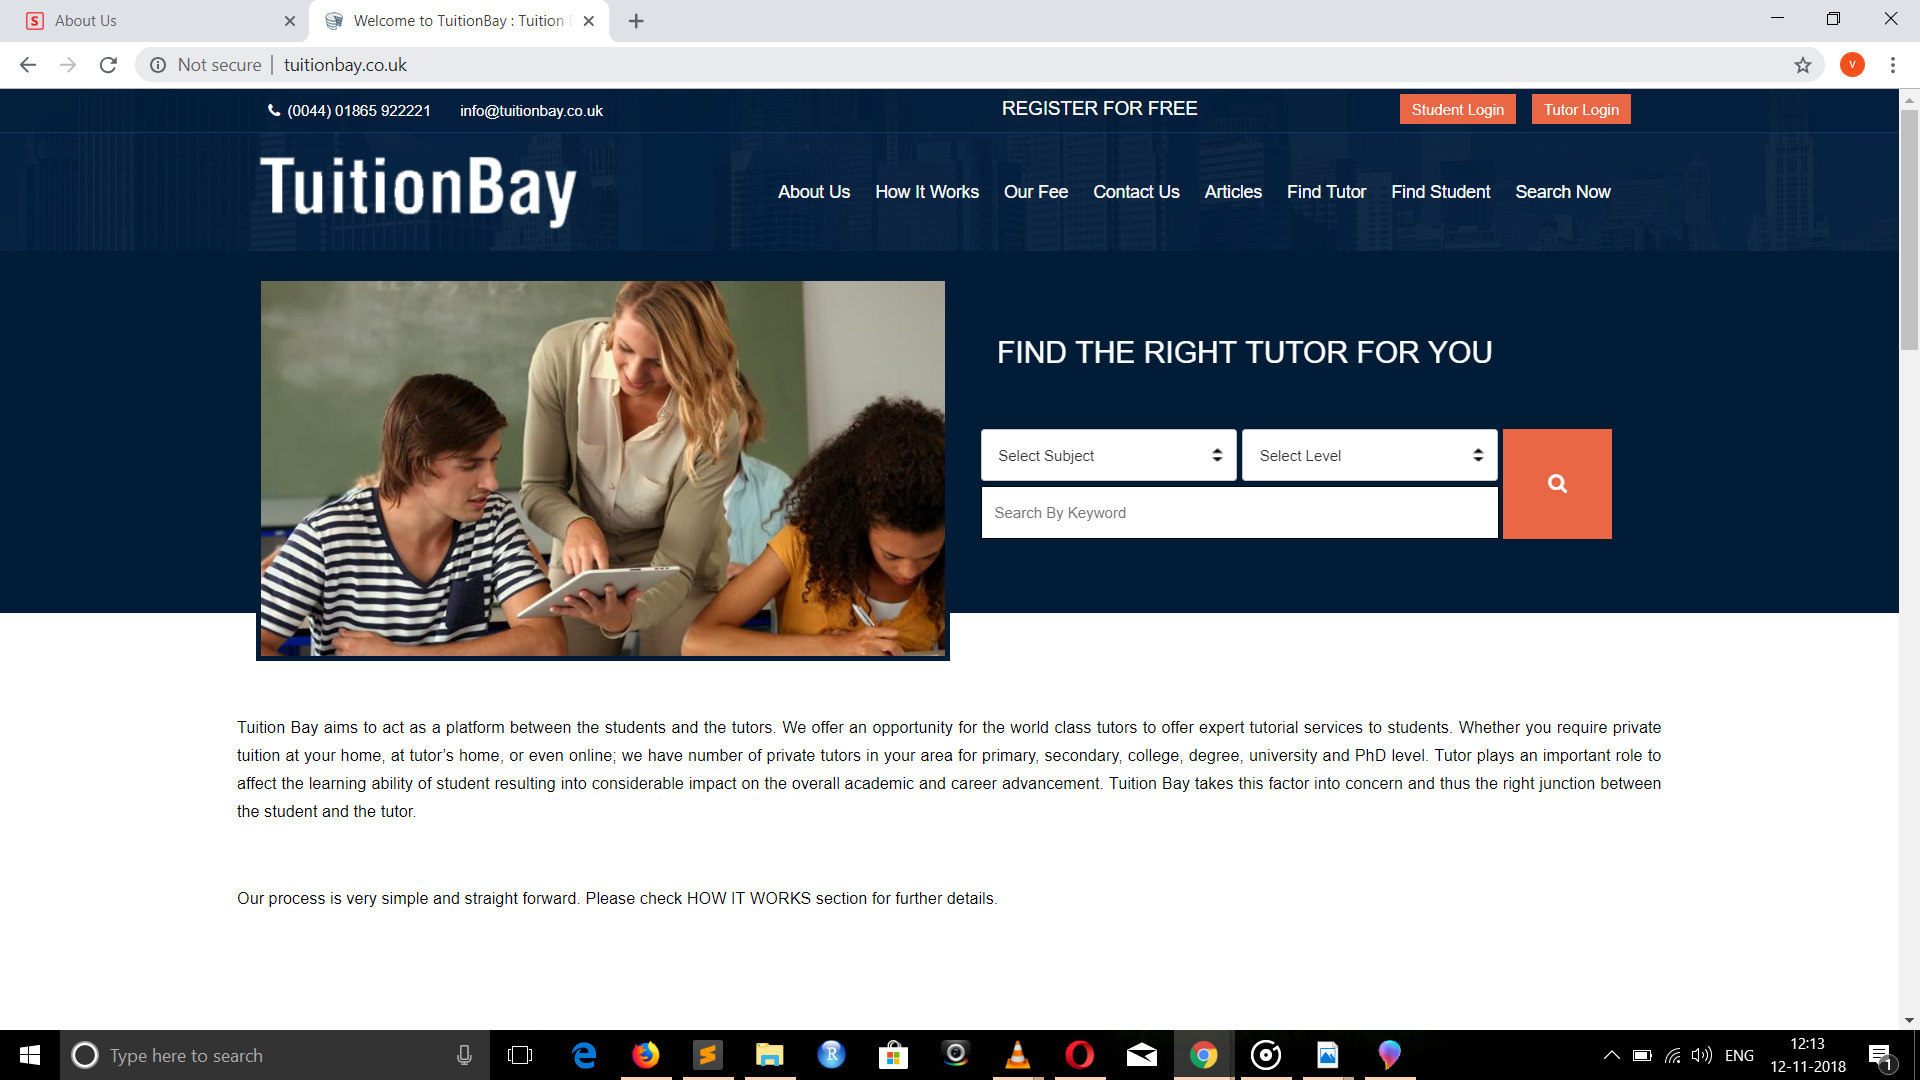 Tuitionbay